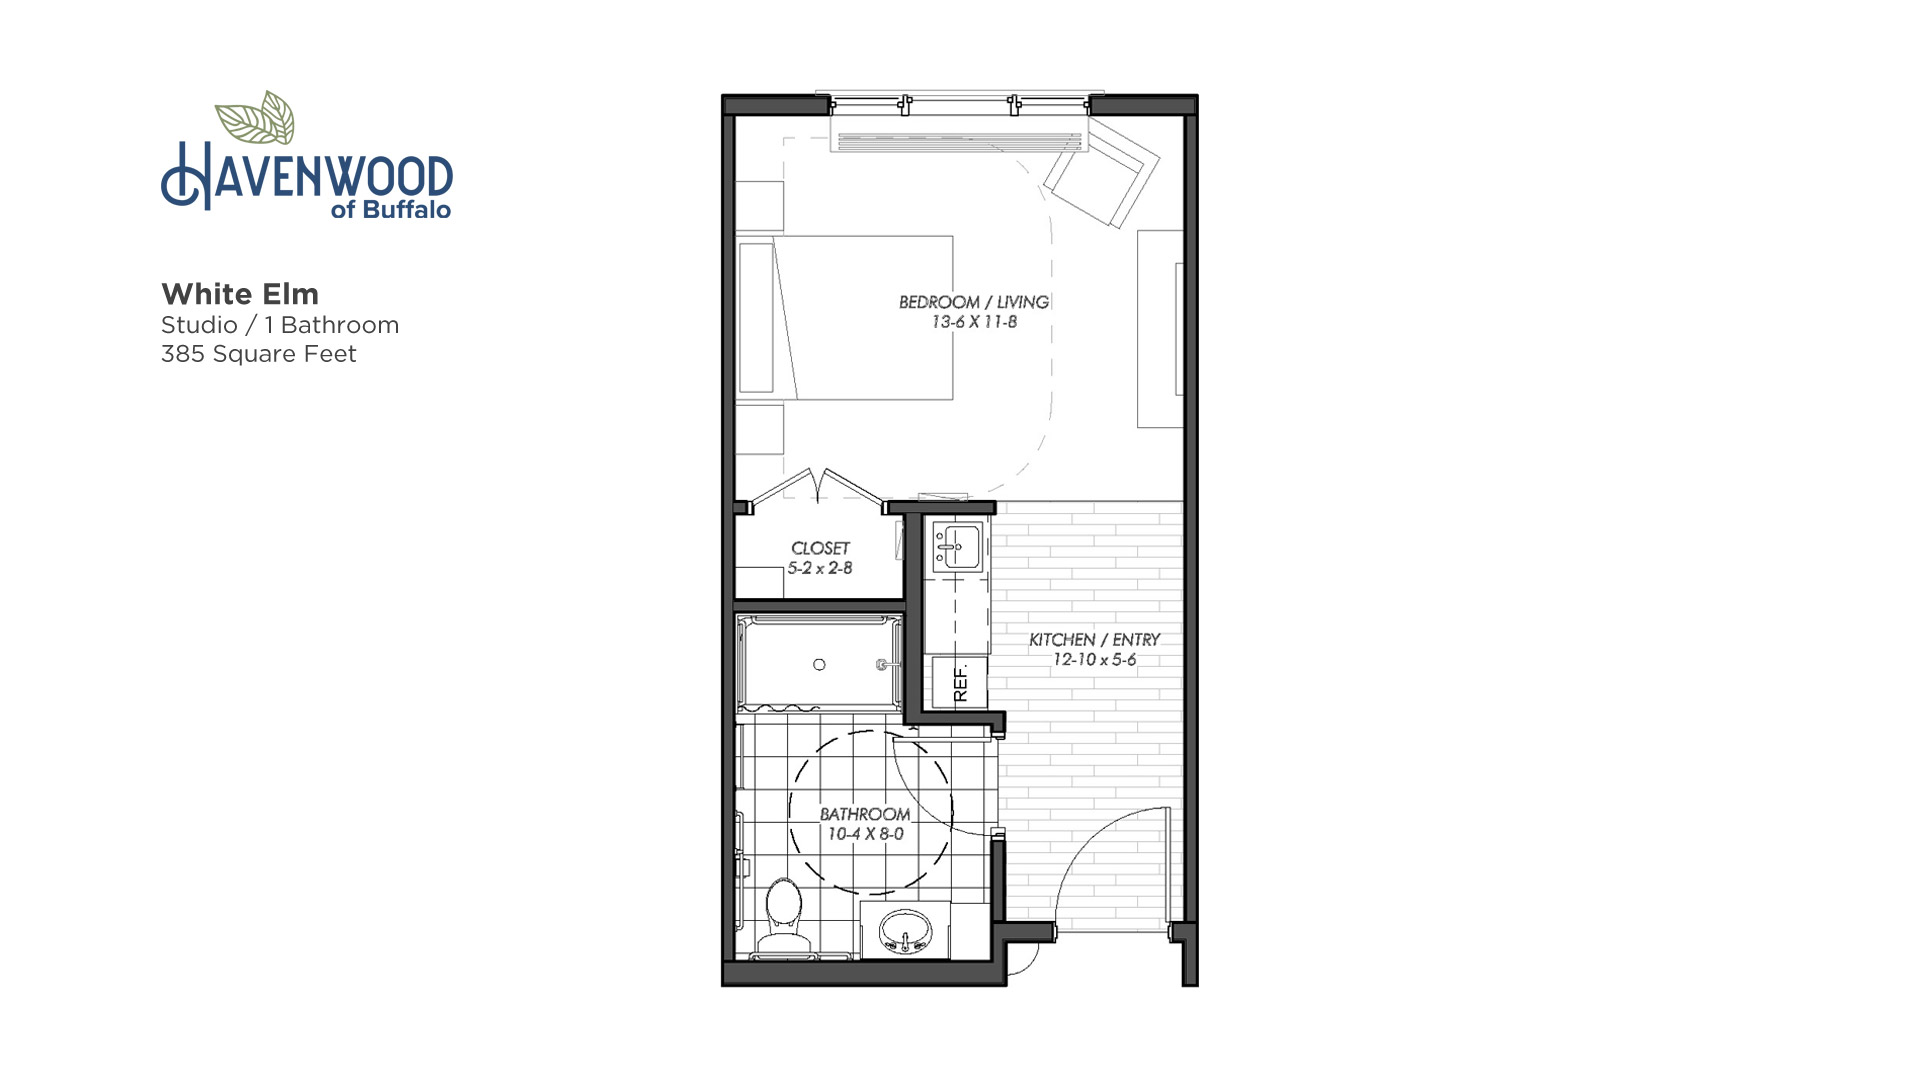 Havenwood of Buffalo White Elm Floor Plan